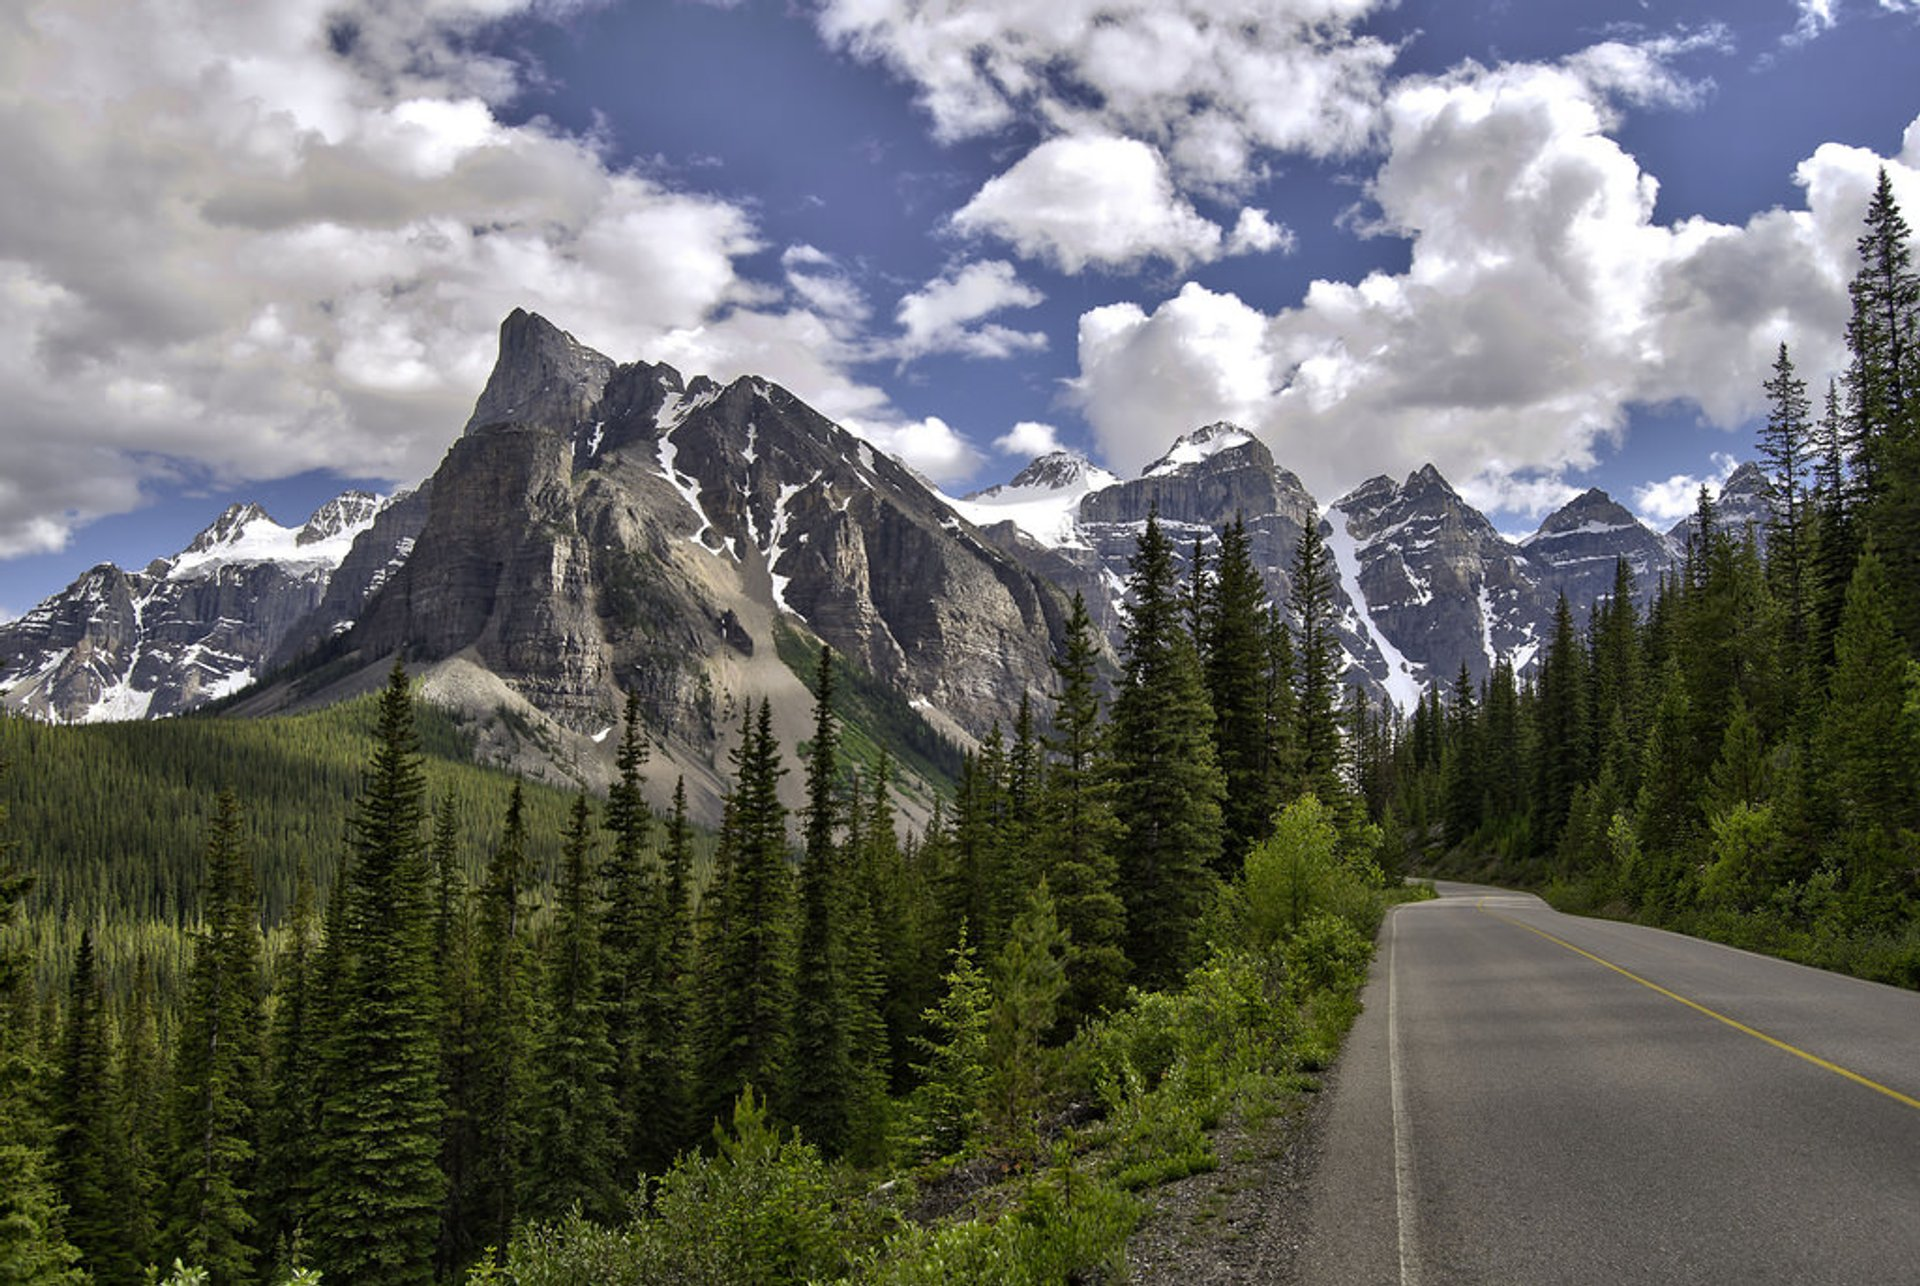 Mountain road to Moraine Lake 2019